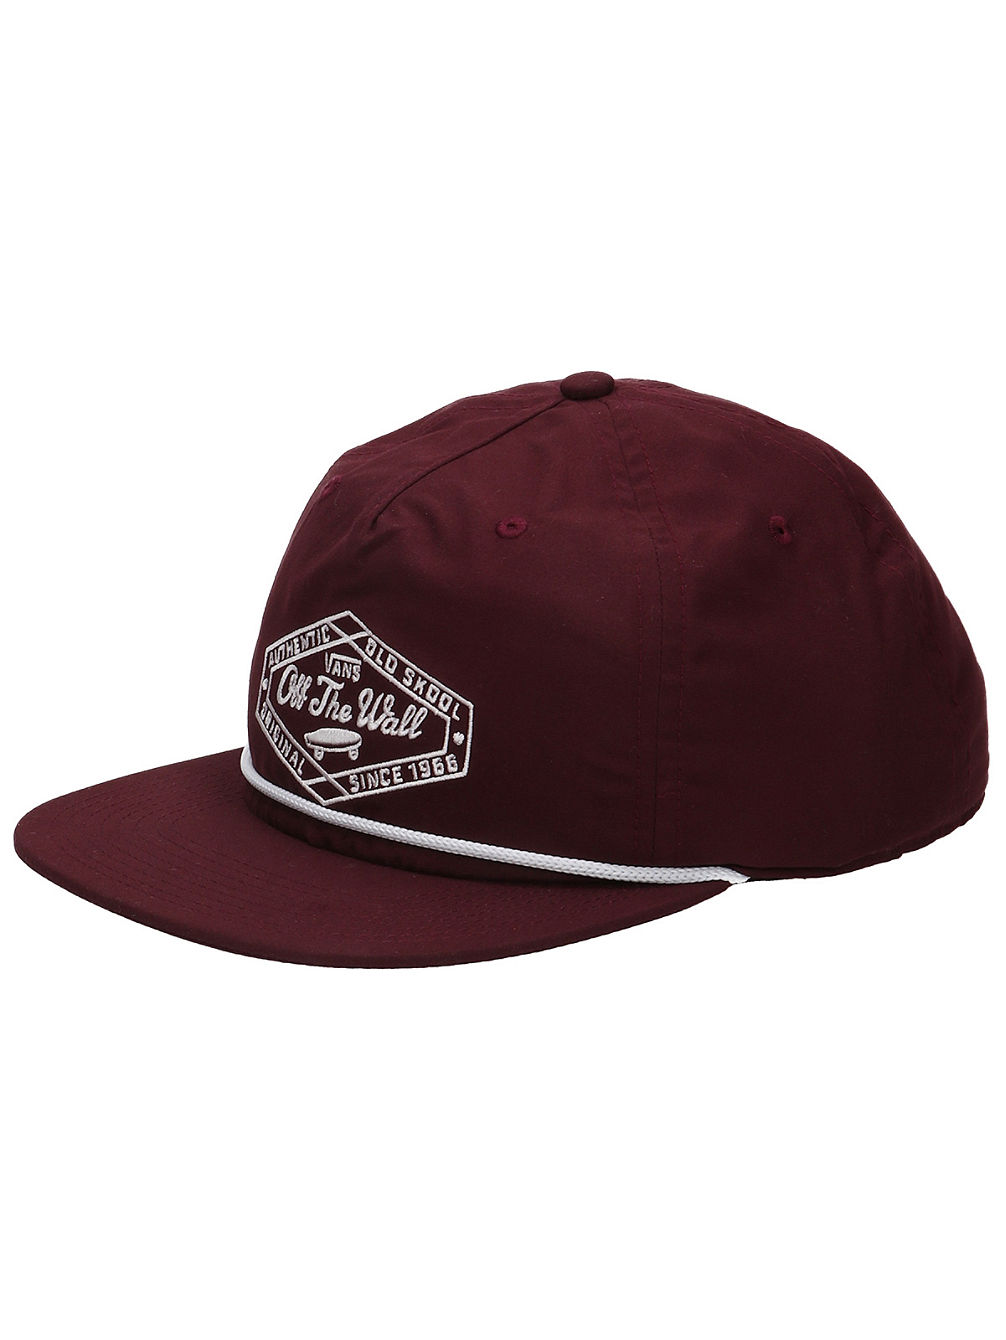 Original Lockup Unstructured Cap